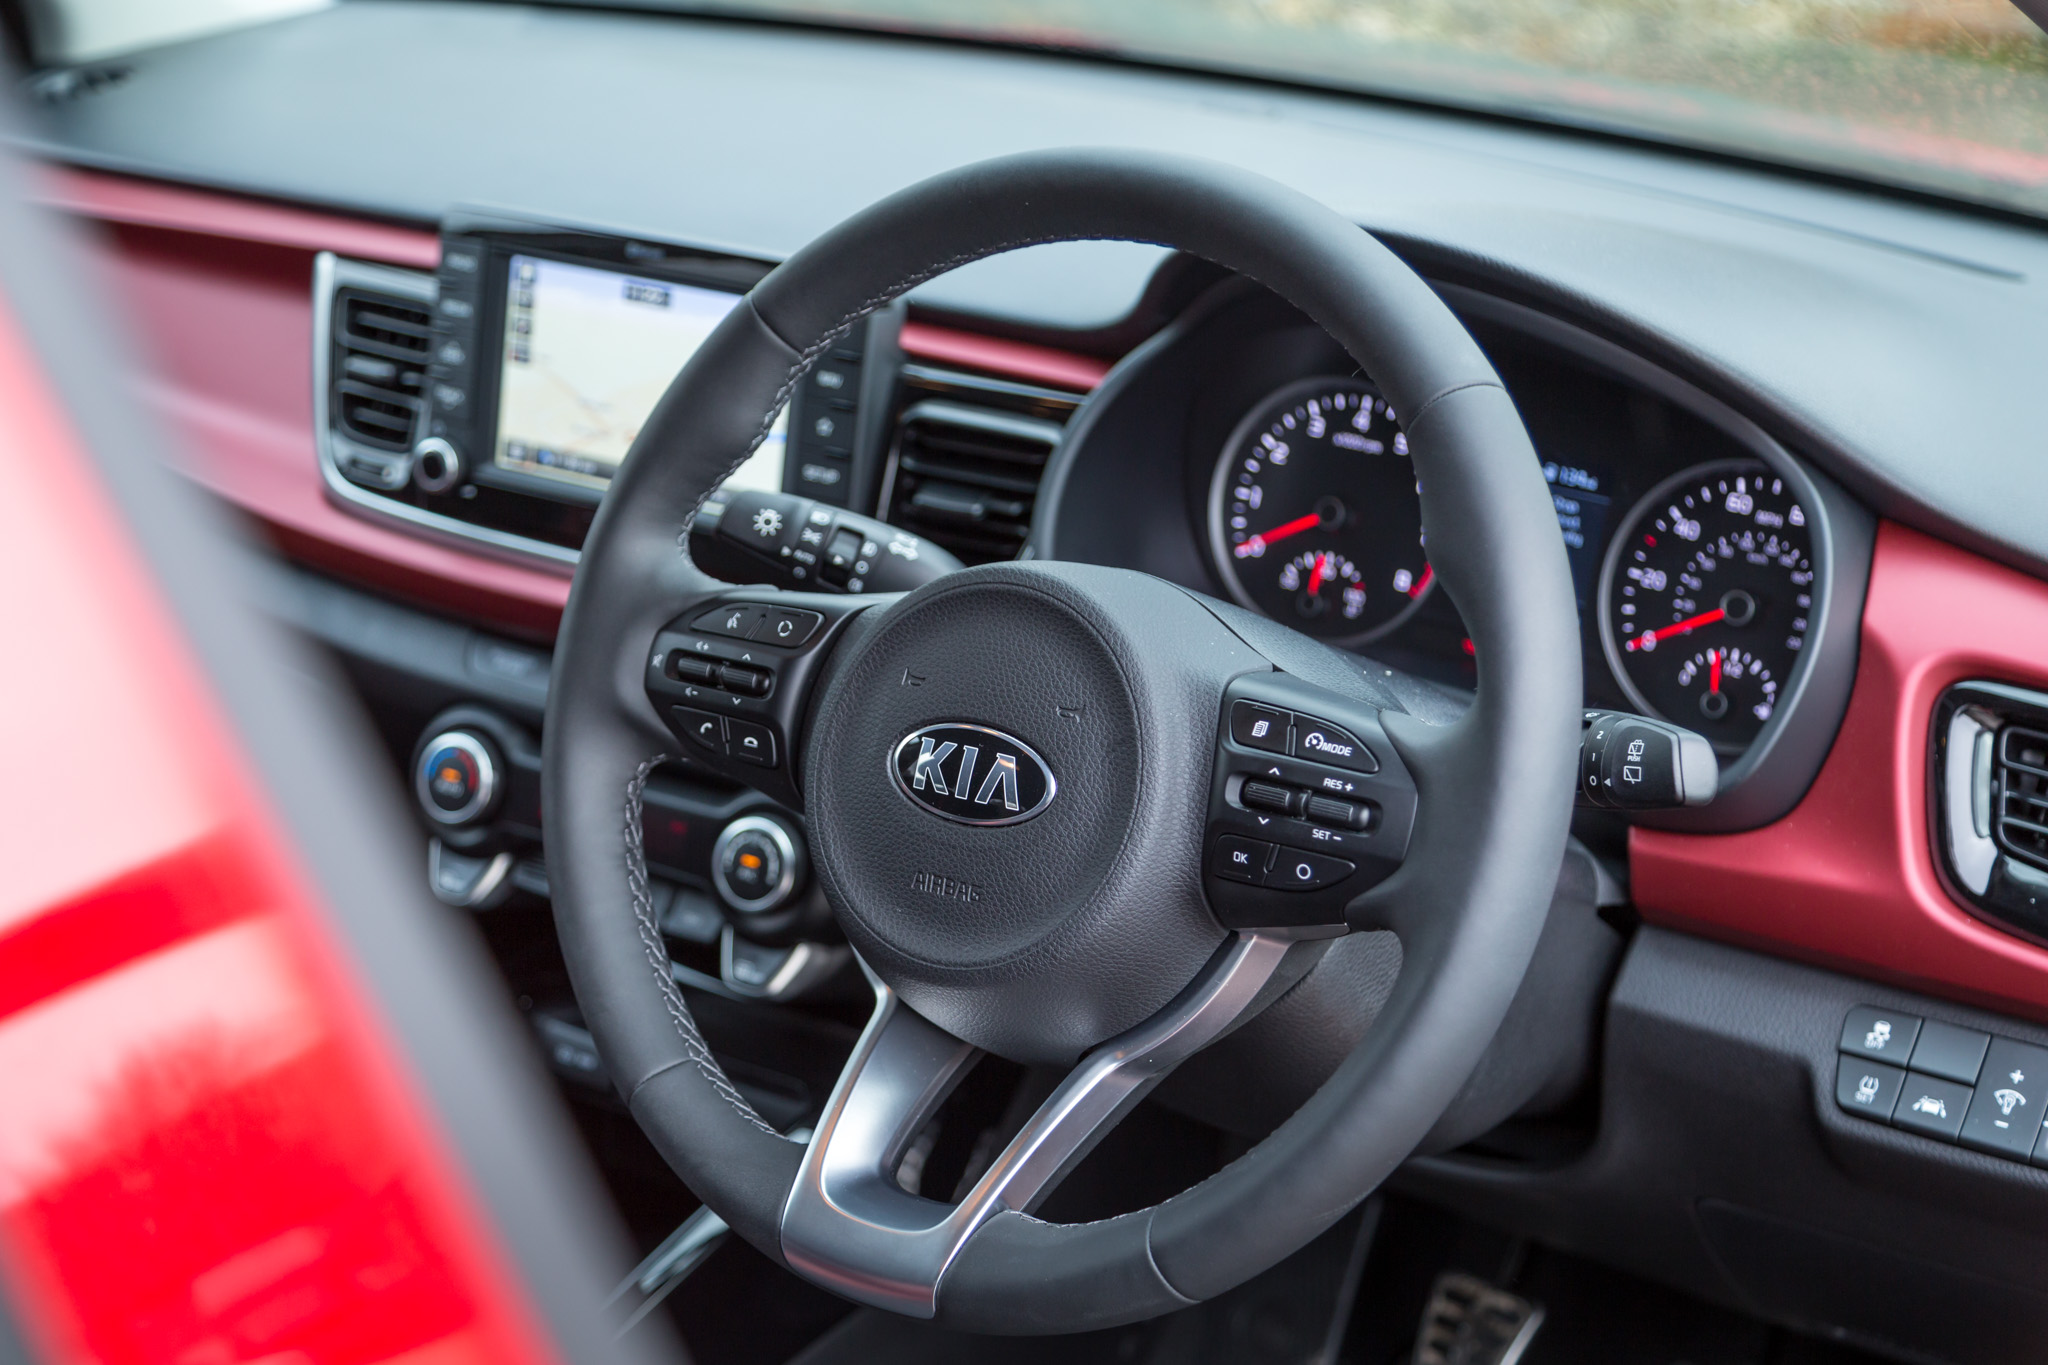 Driven: 2017 Kia Rio First Edition Review - More Grown Up